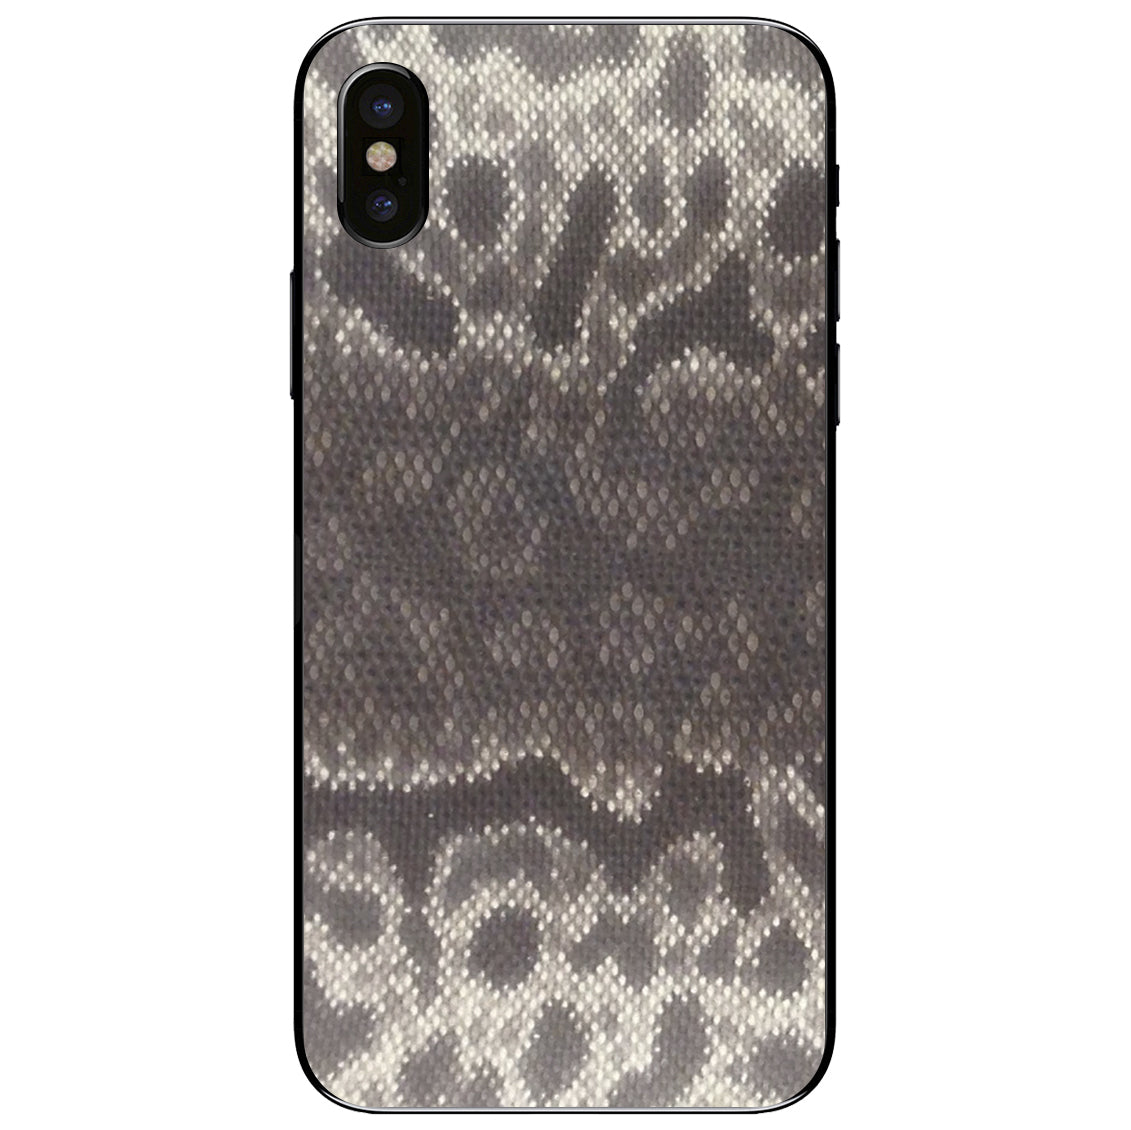 Karung Snake iPhone XS Leather Skin